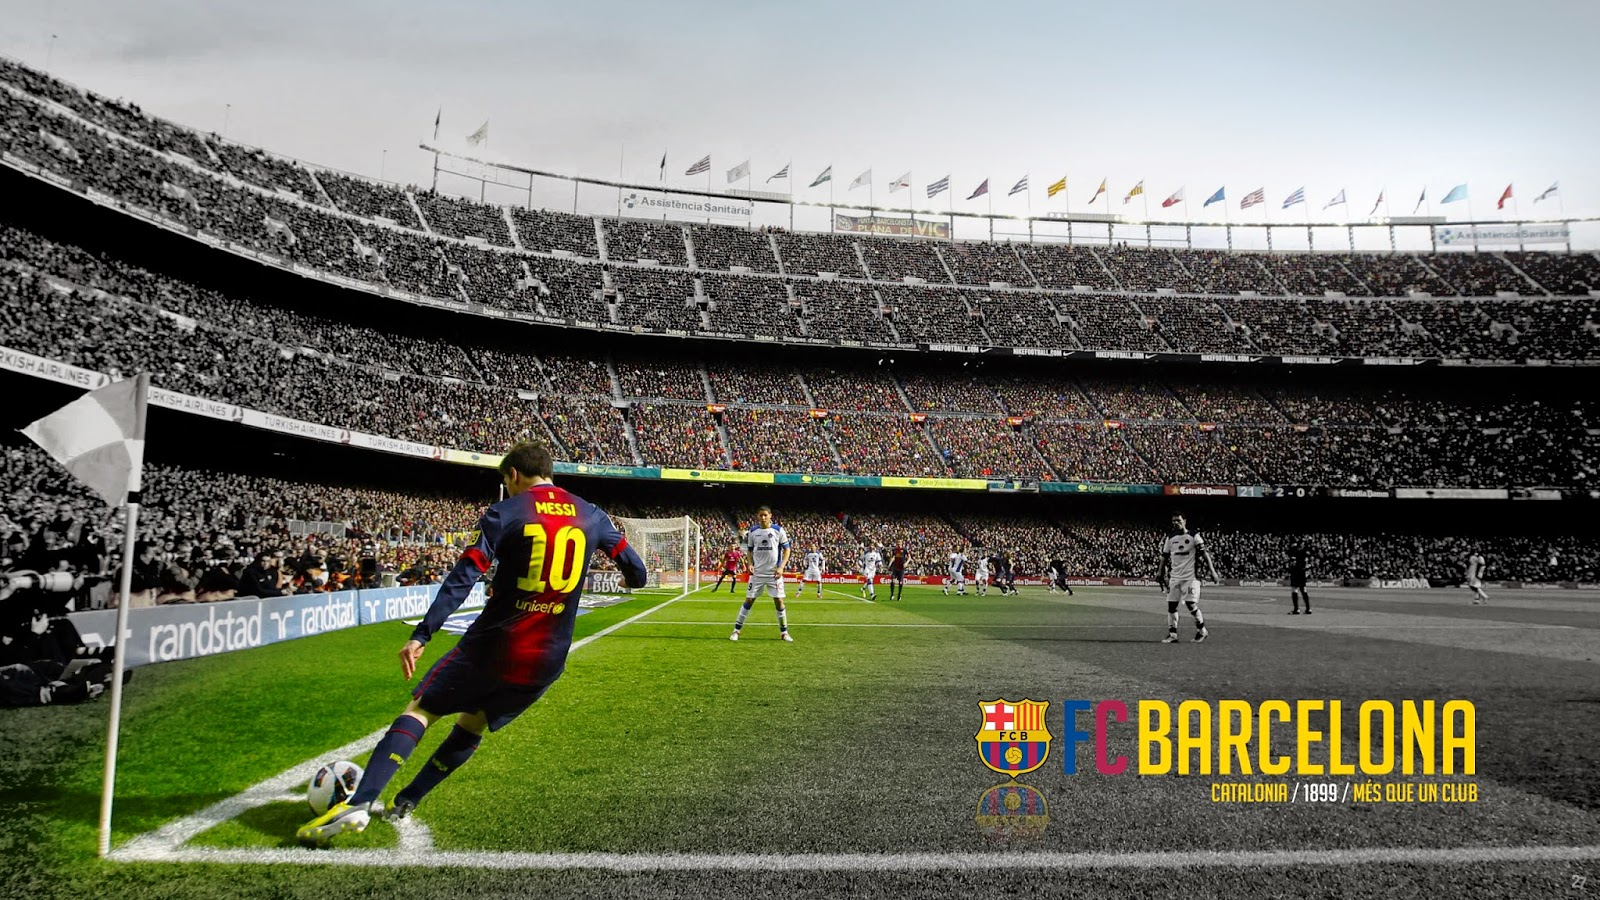 Camp nou hd wallpaper fc barcelona photo - Camp nou 4k wallpaper ...